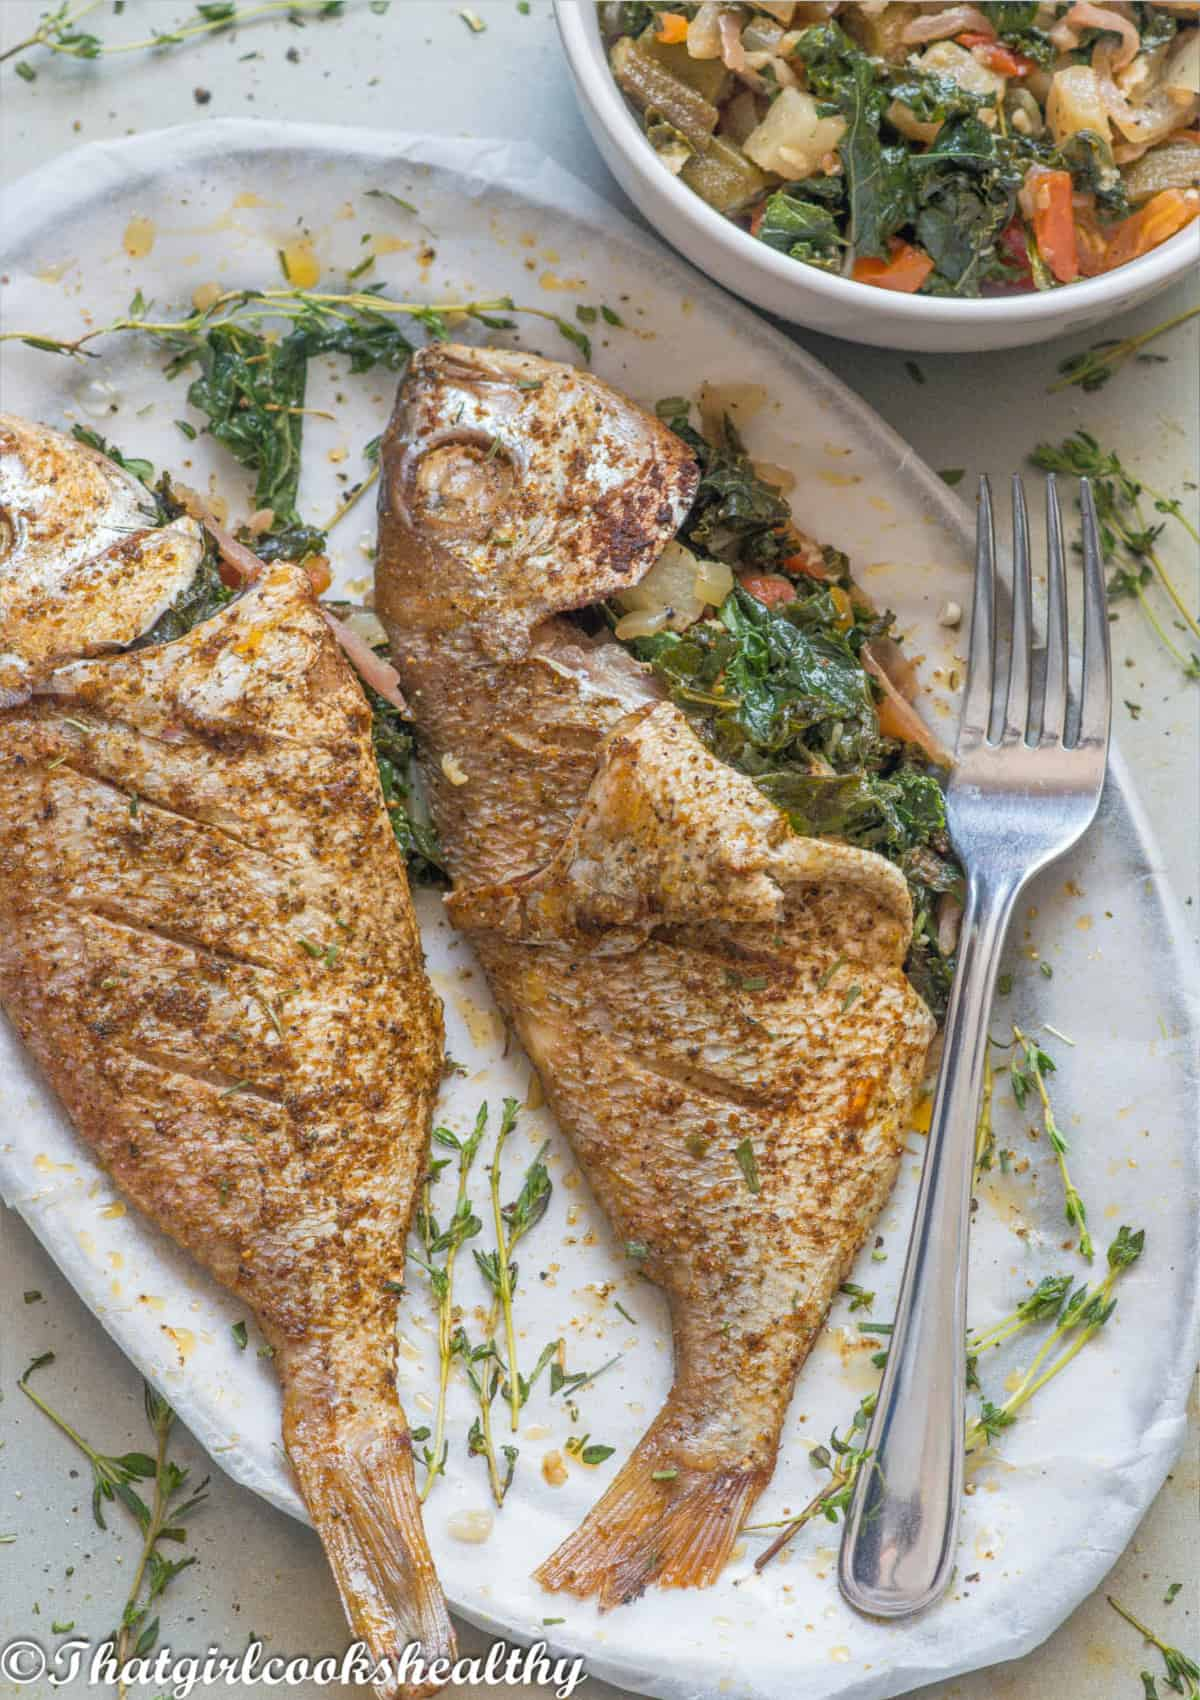 fish with vegetables stuffed inside